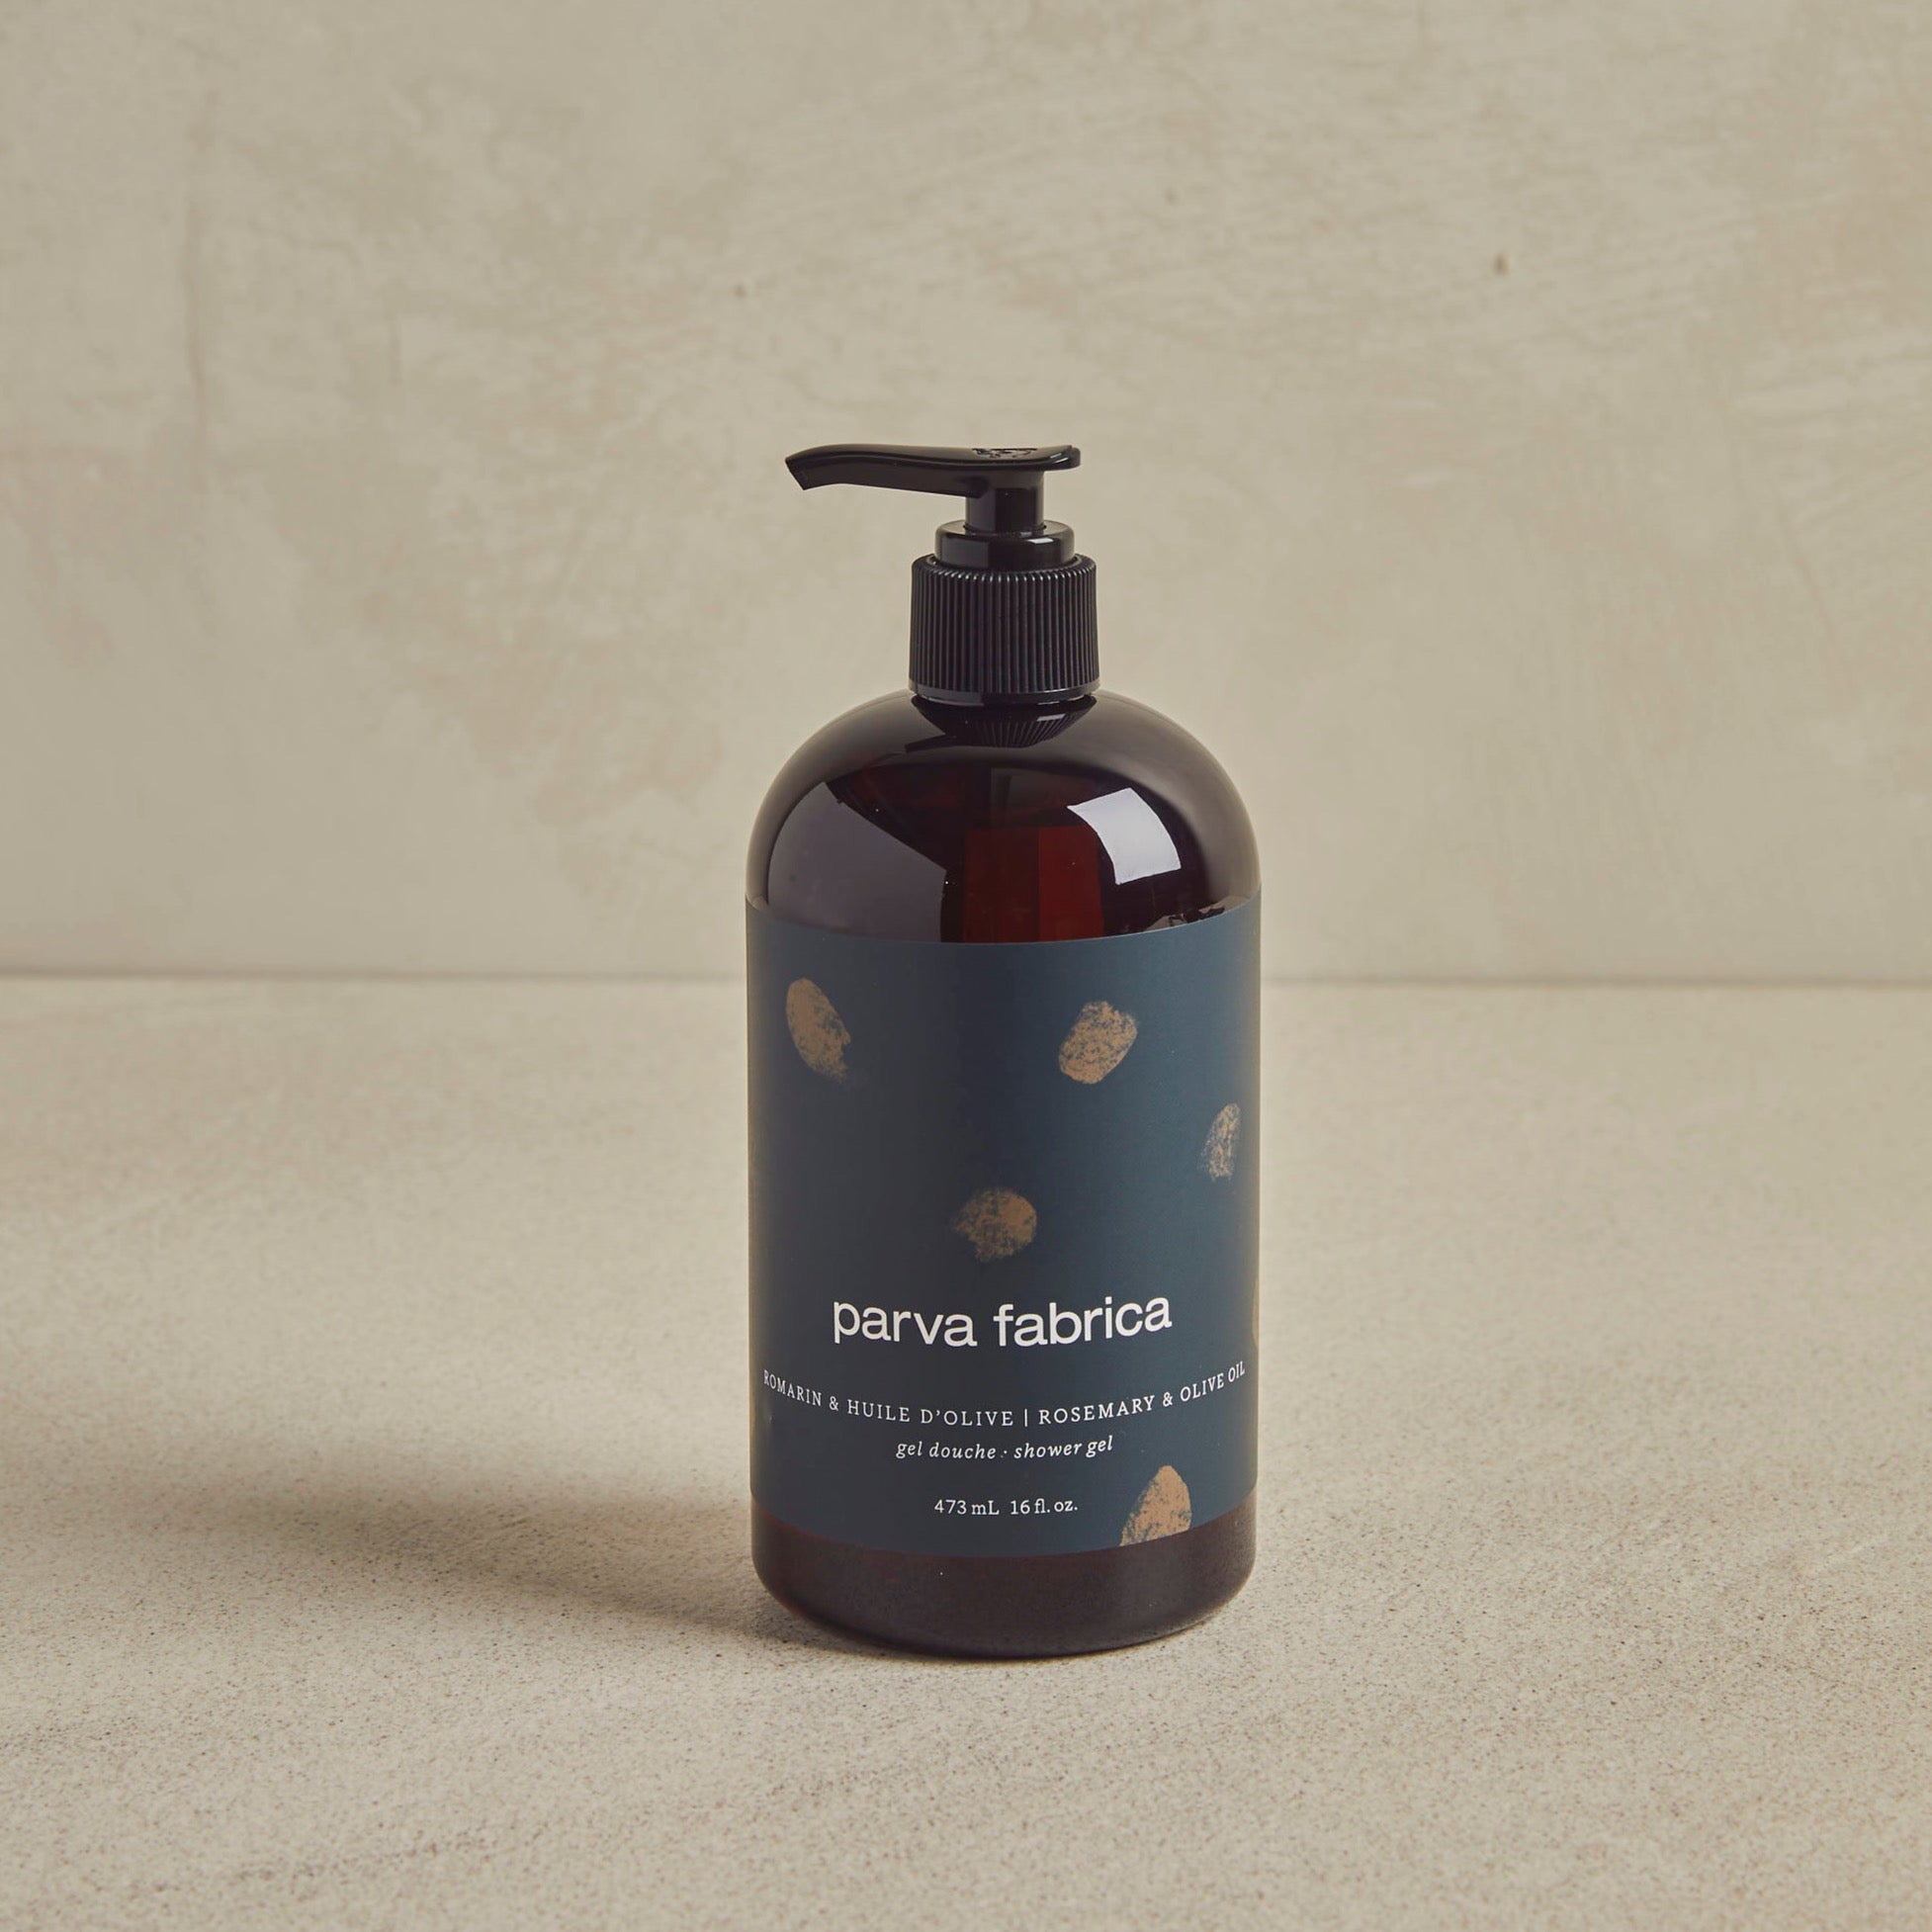 Shower gel bottle with a Navy blue print